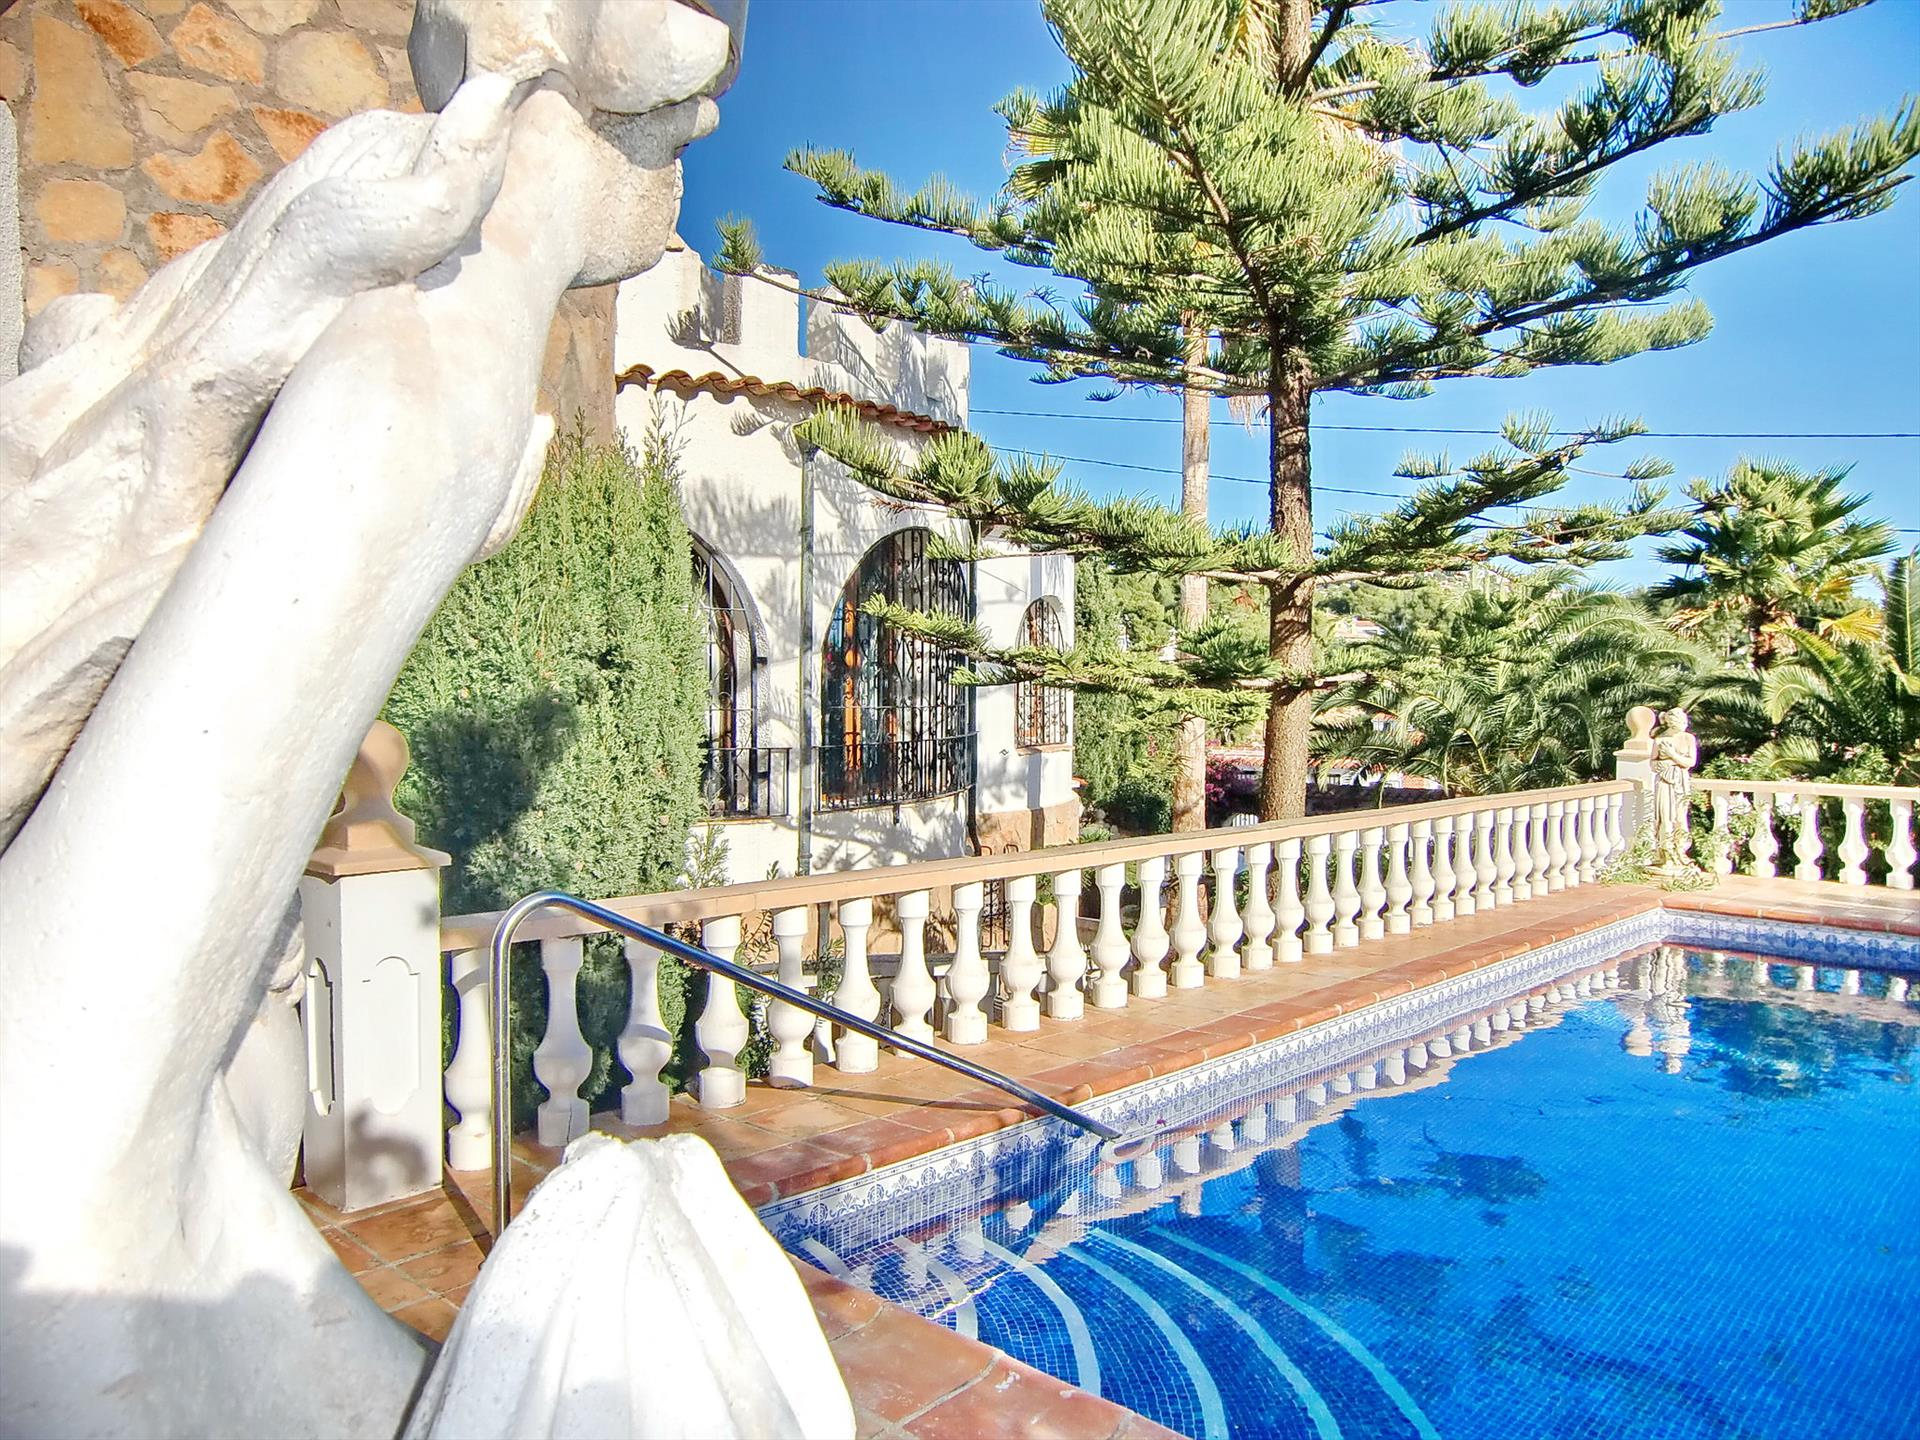 Alquileres Villamar  Leones 4p, Classic and romantic villa in Benissa, on the Costa Blanca, Spain  with private pool for 4 persons.....